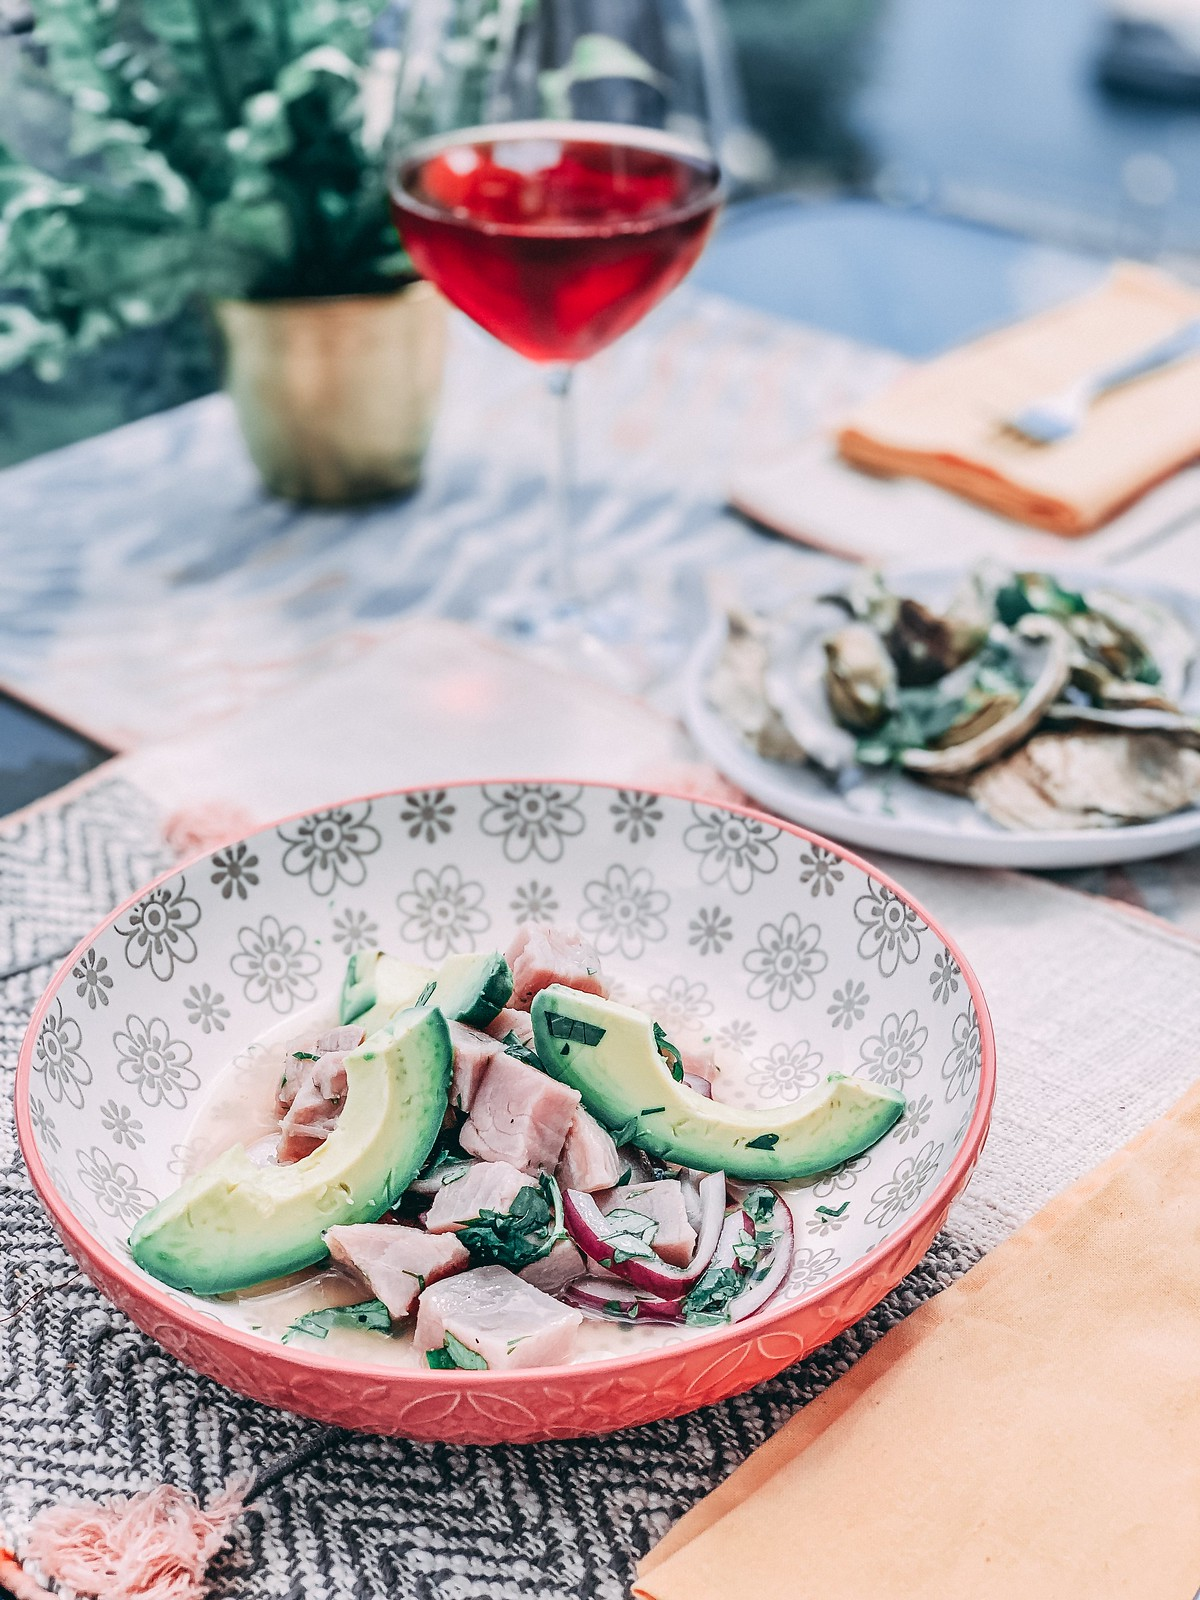 Tuna Ceviche with avocado